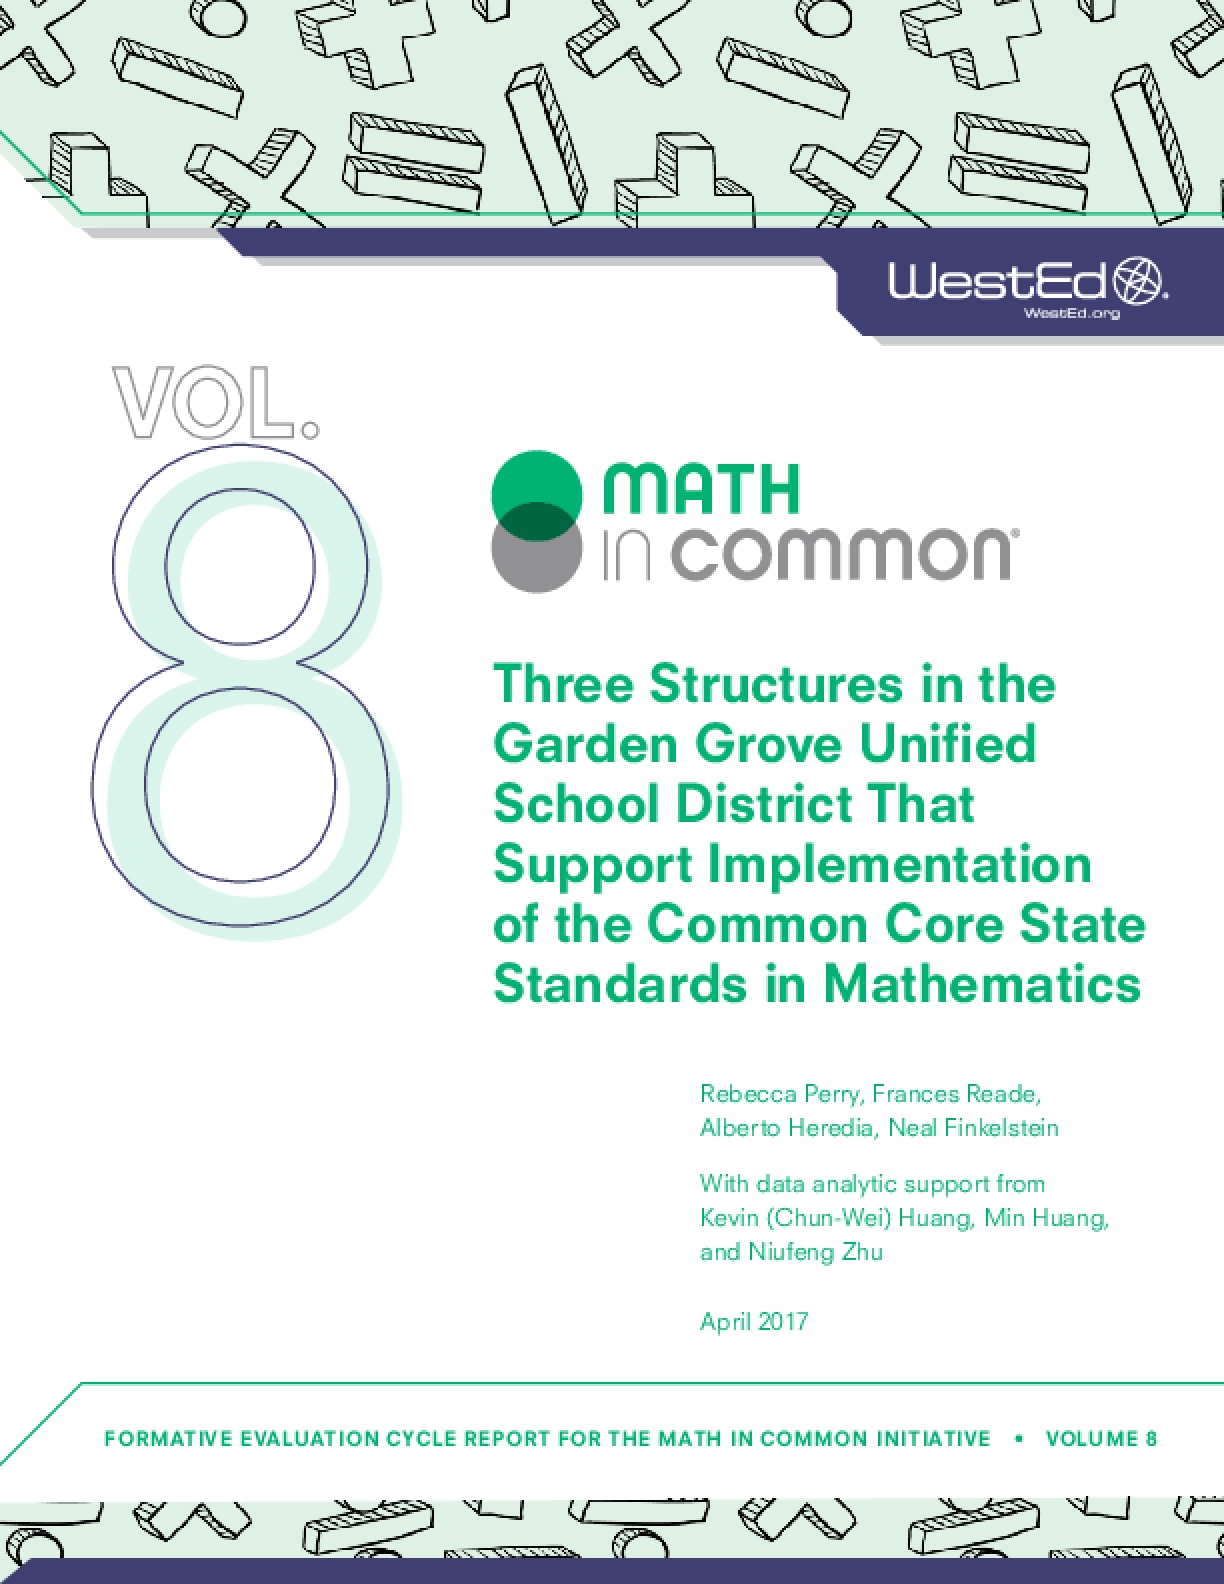 Three Structures in the Garden Grove Unified School District That Support Implementation of the Common Core State Standards in Mathematics